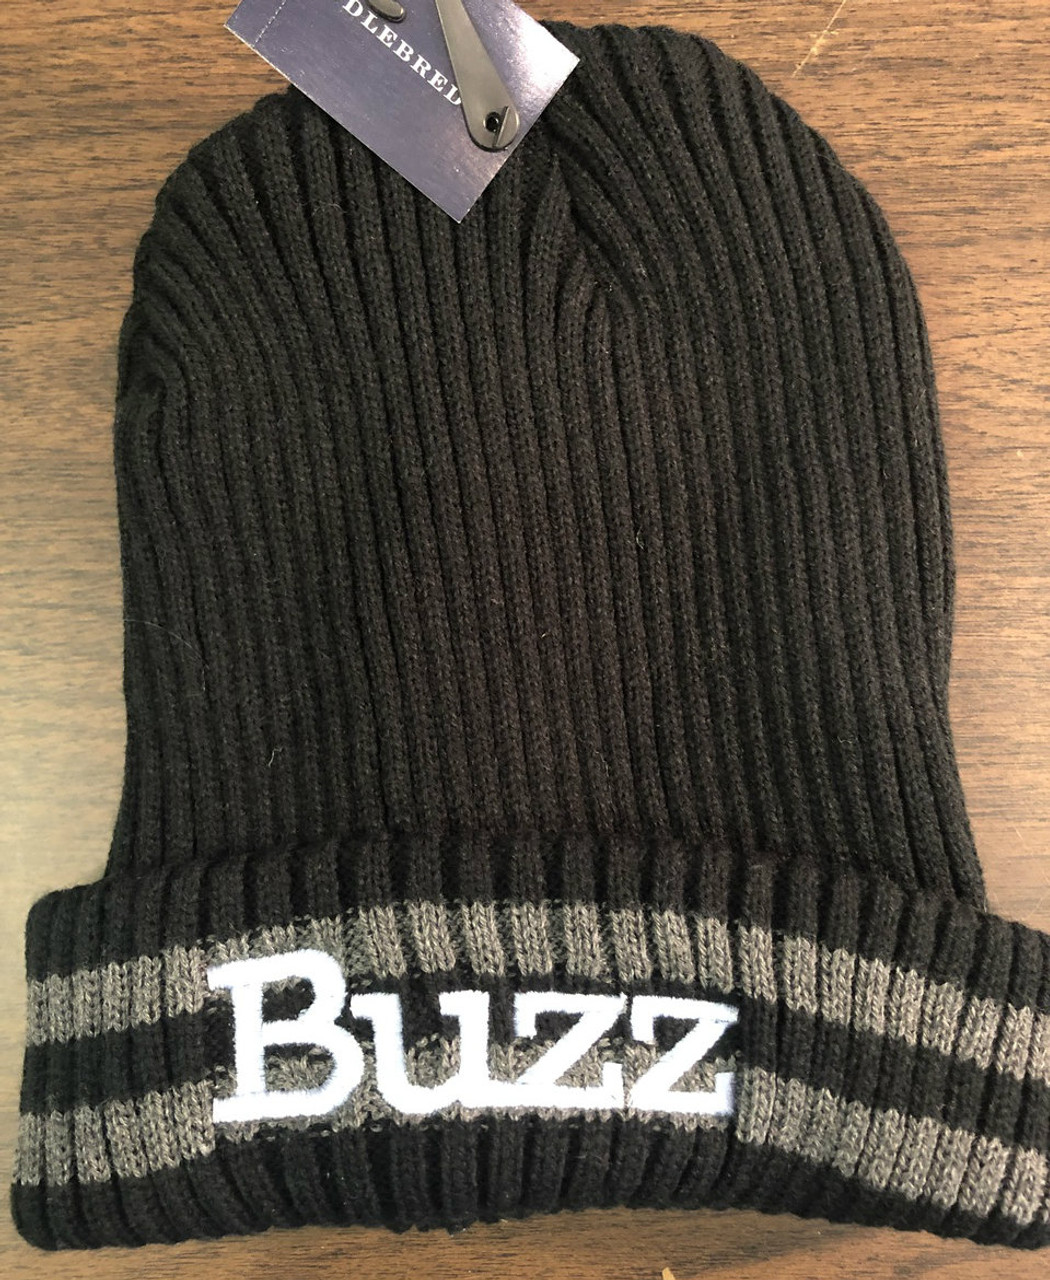 Monogram Oops Personalized Beanie Buzz - Girls Round Here 3324d9408cc